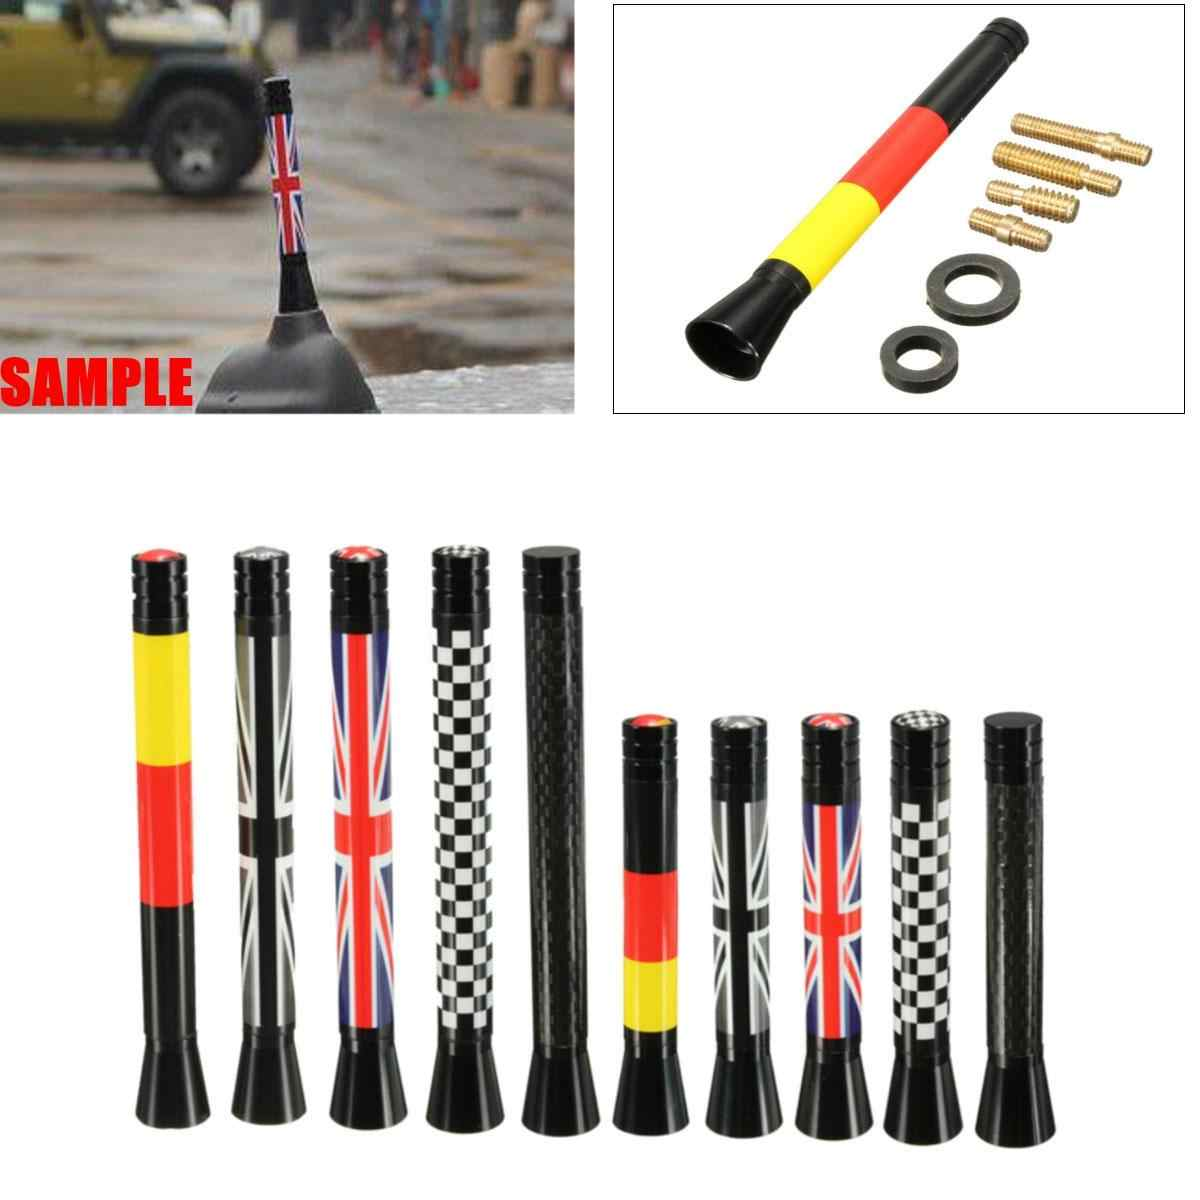 Union Jack Car Roof Radio Aerial fm Antenna Antena for Mini Cooper S JCW R55 R56 R57 R60 F55 F56 Car Styling